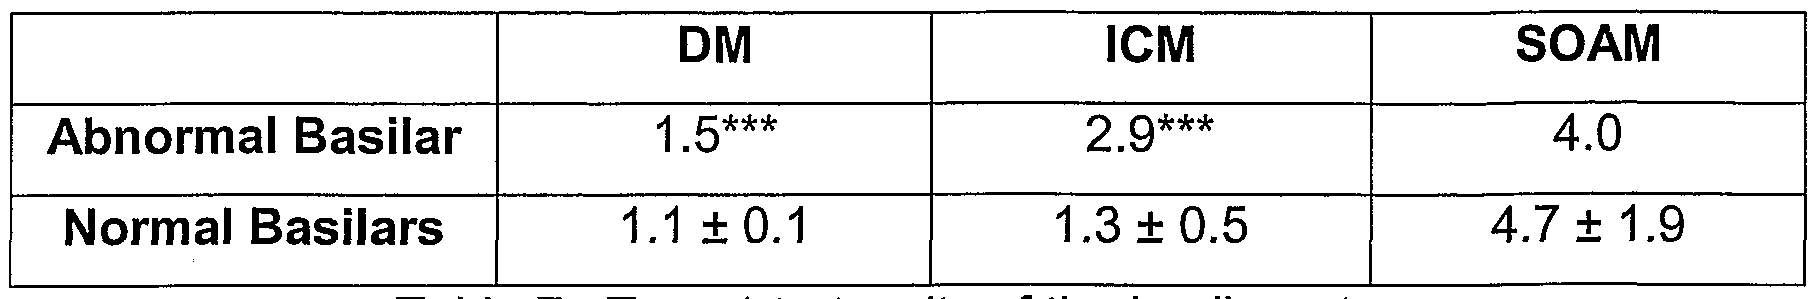 WO2005023086A2 - Systems, methods, and computer program